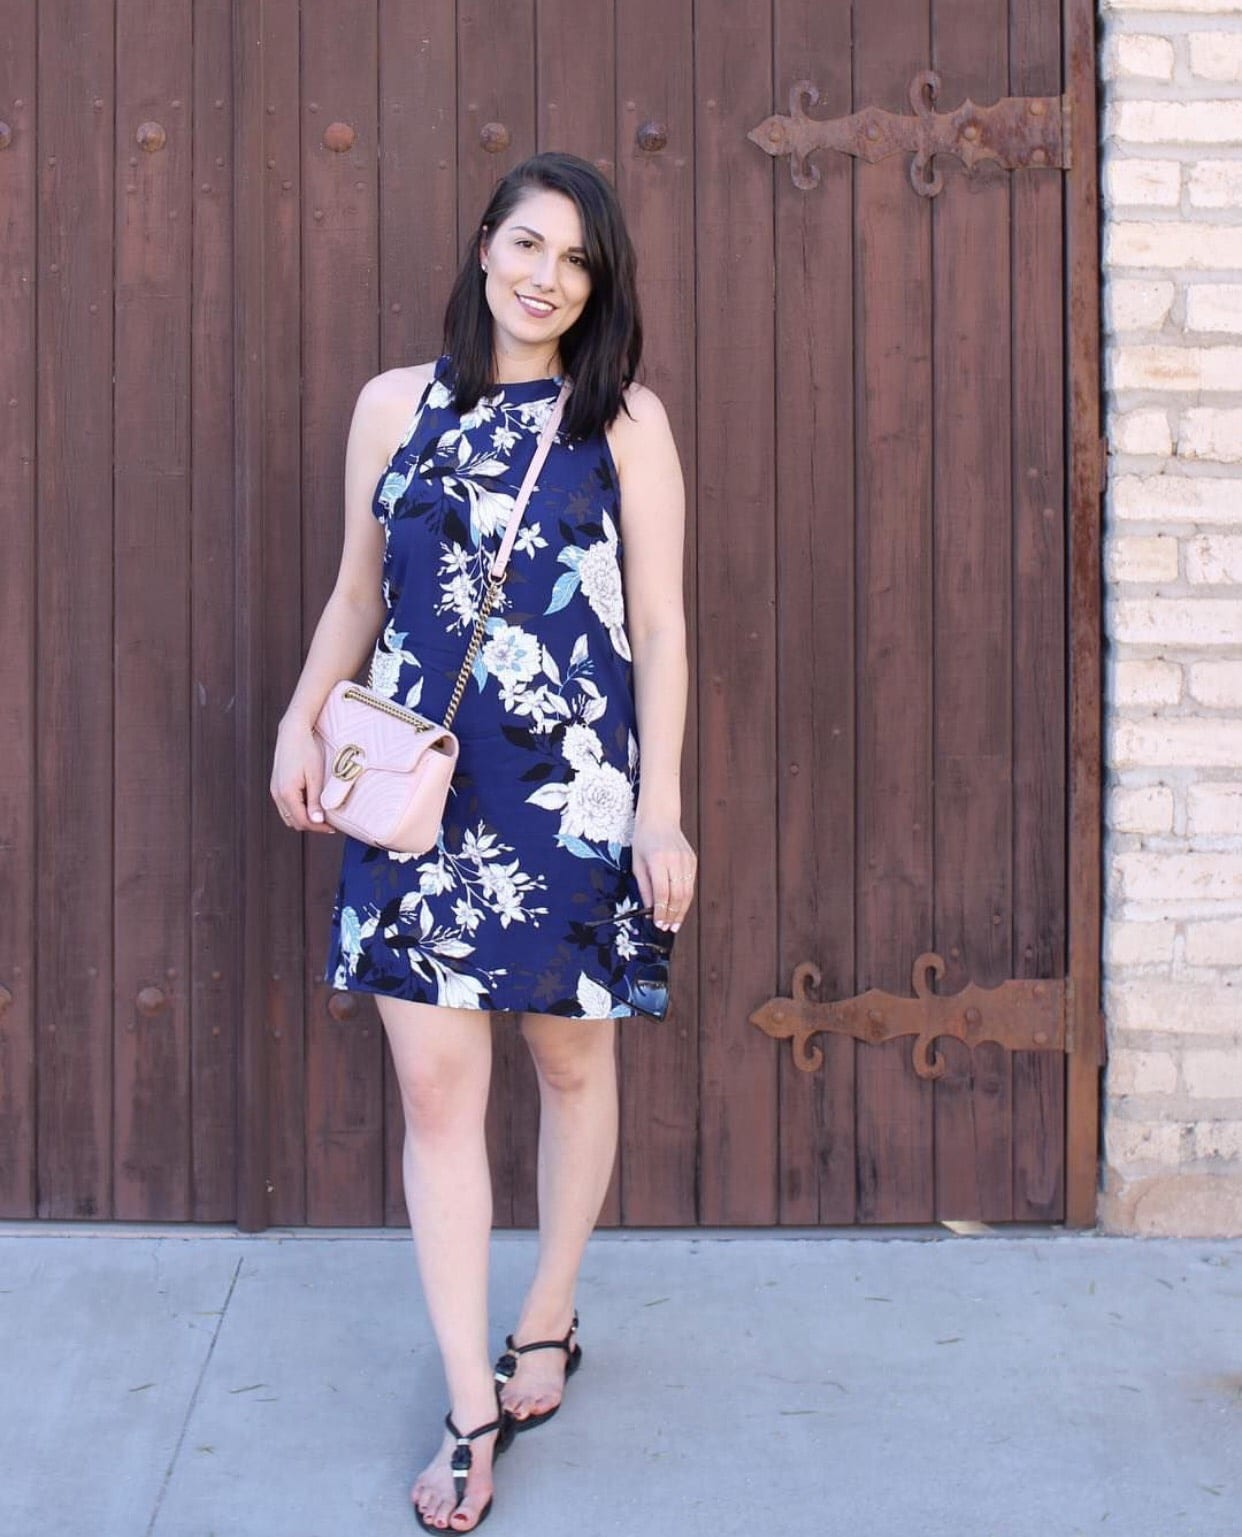 This is a close up of me wearing a blue floral dress from Stitchfix in Barrio Viejo, Tucson.